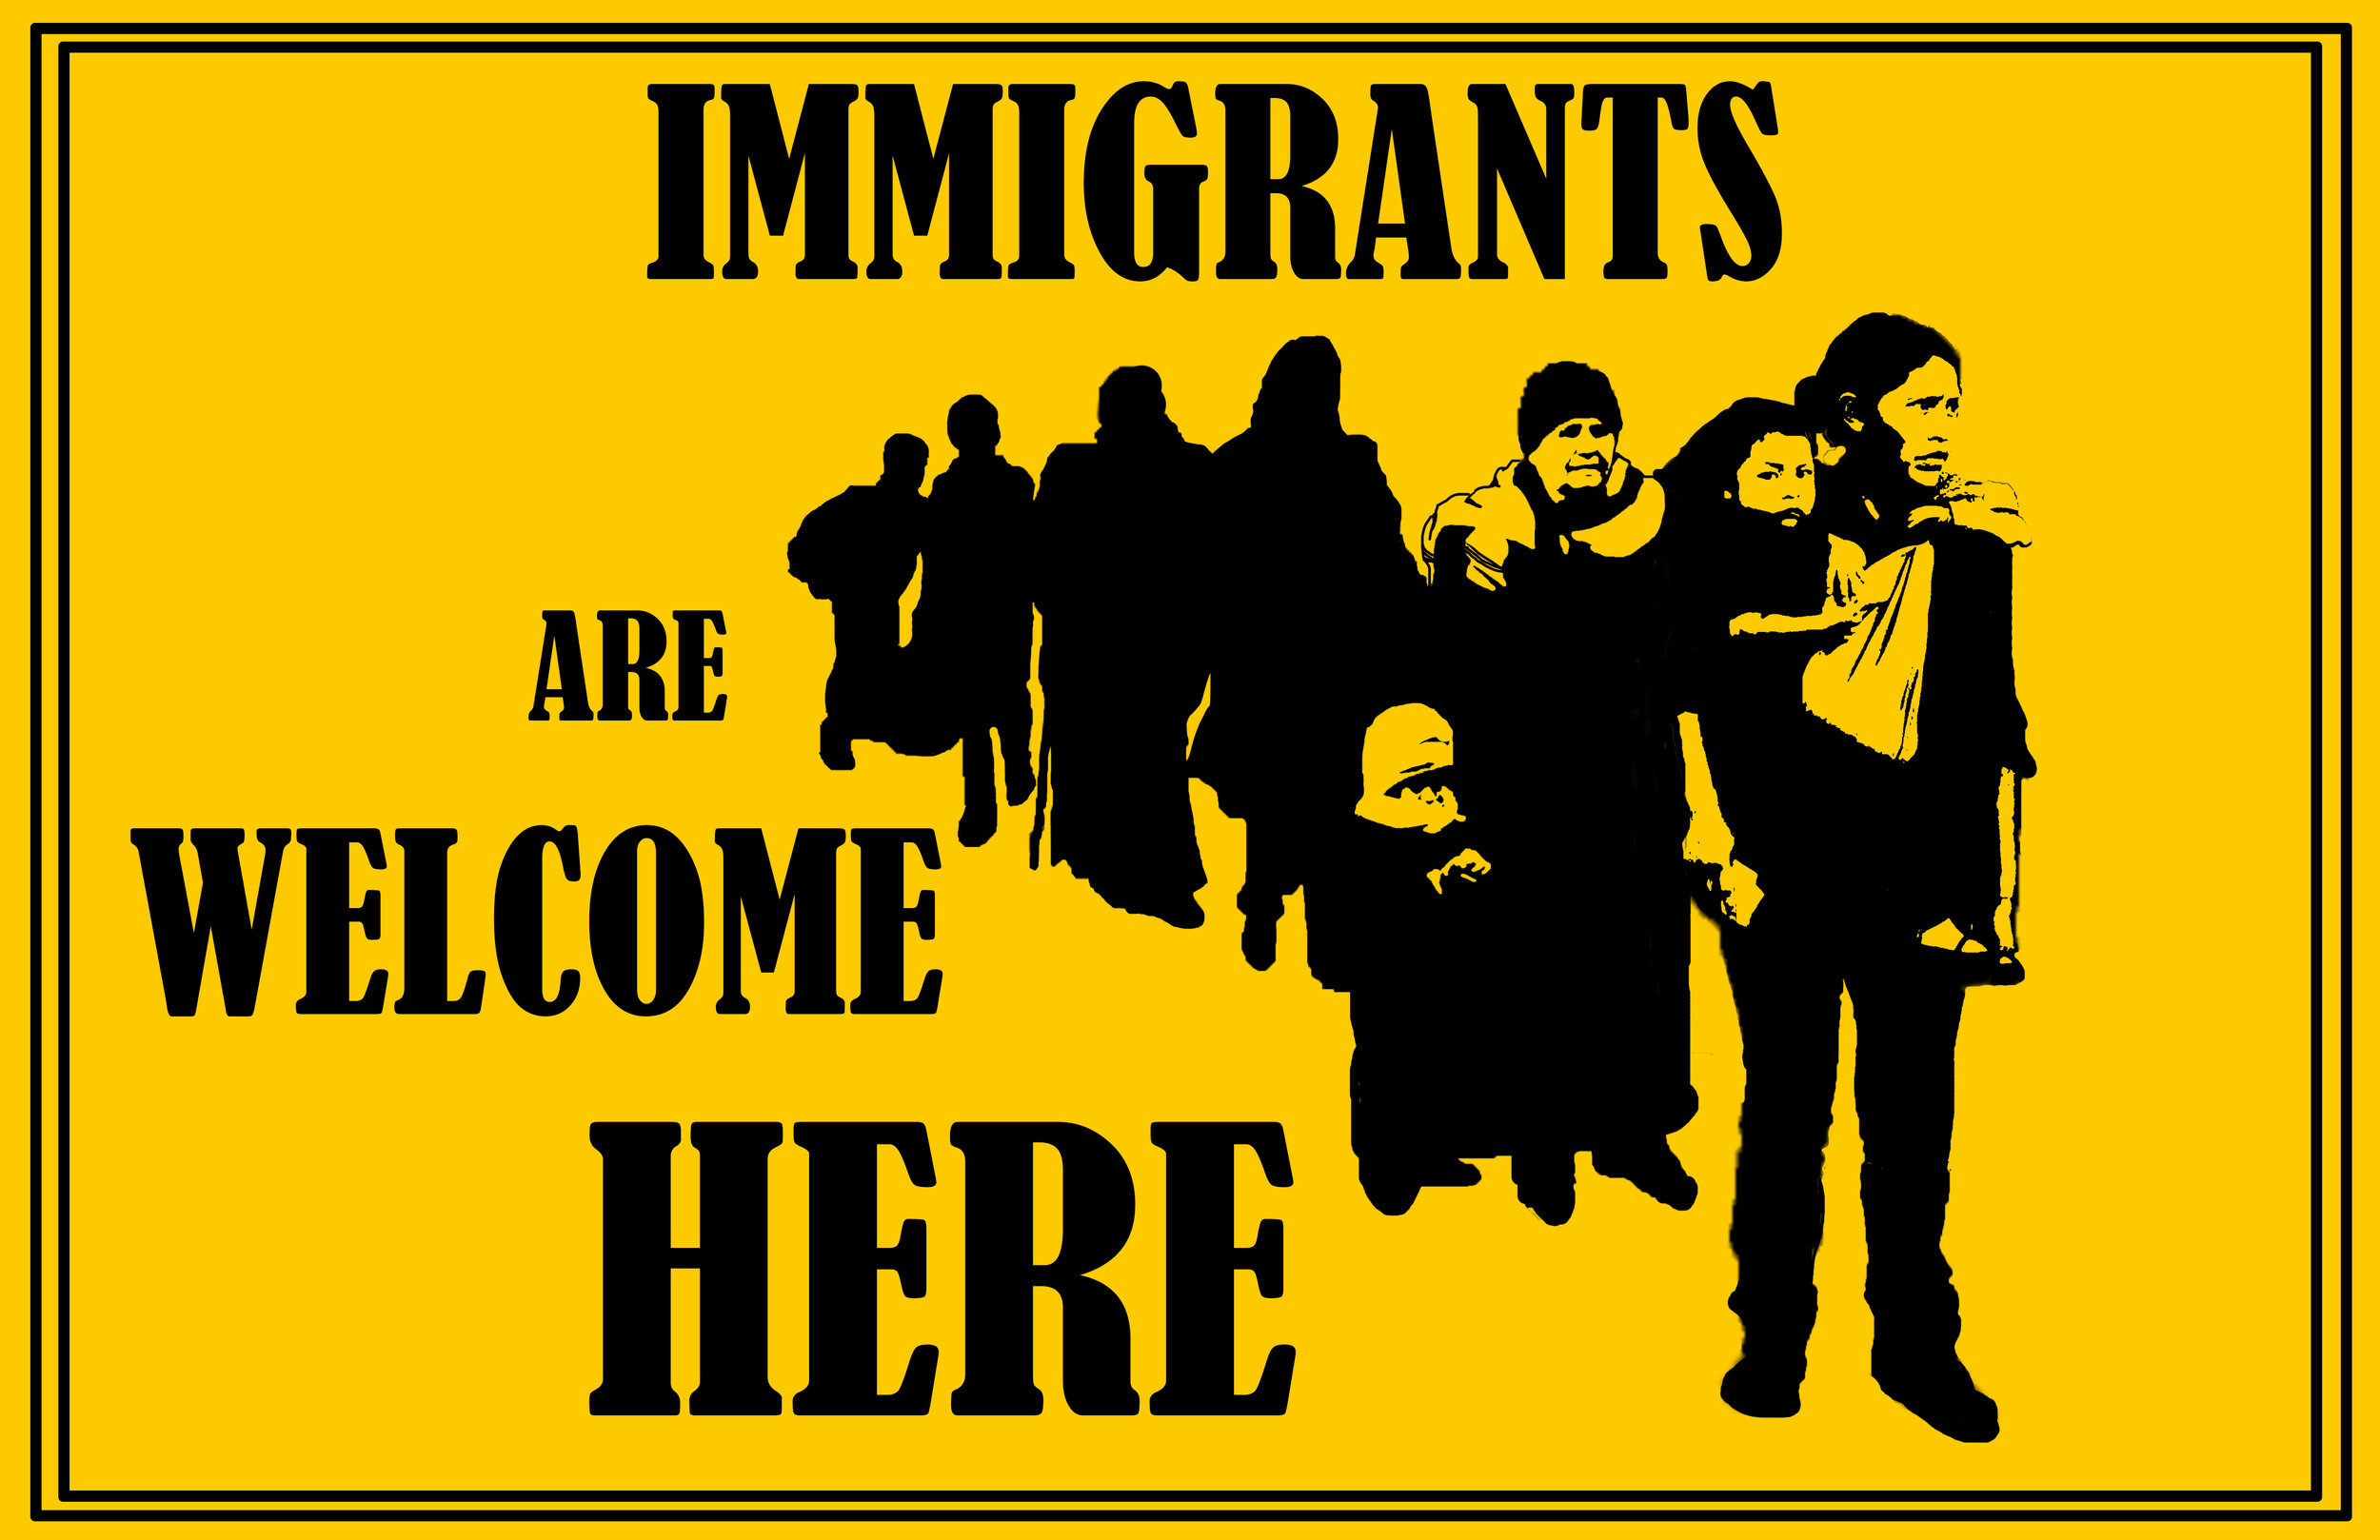 immigrants are welcome here.jpg